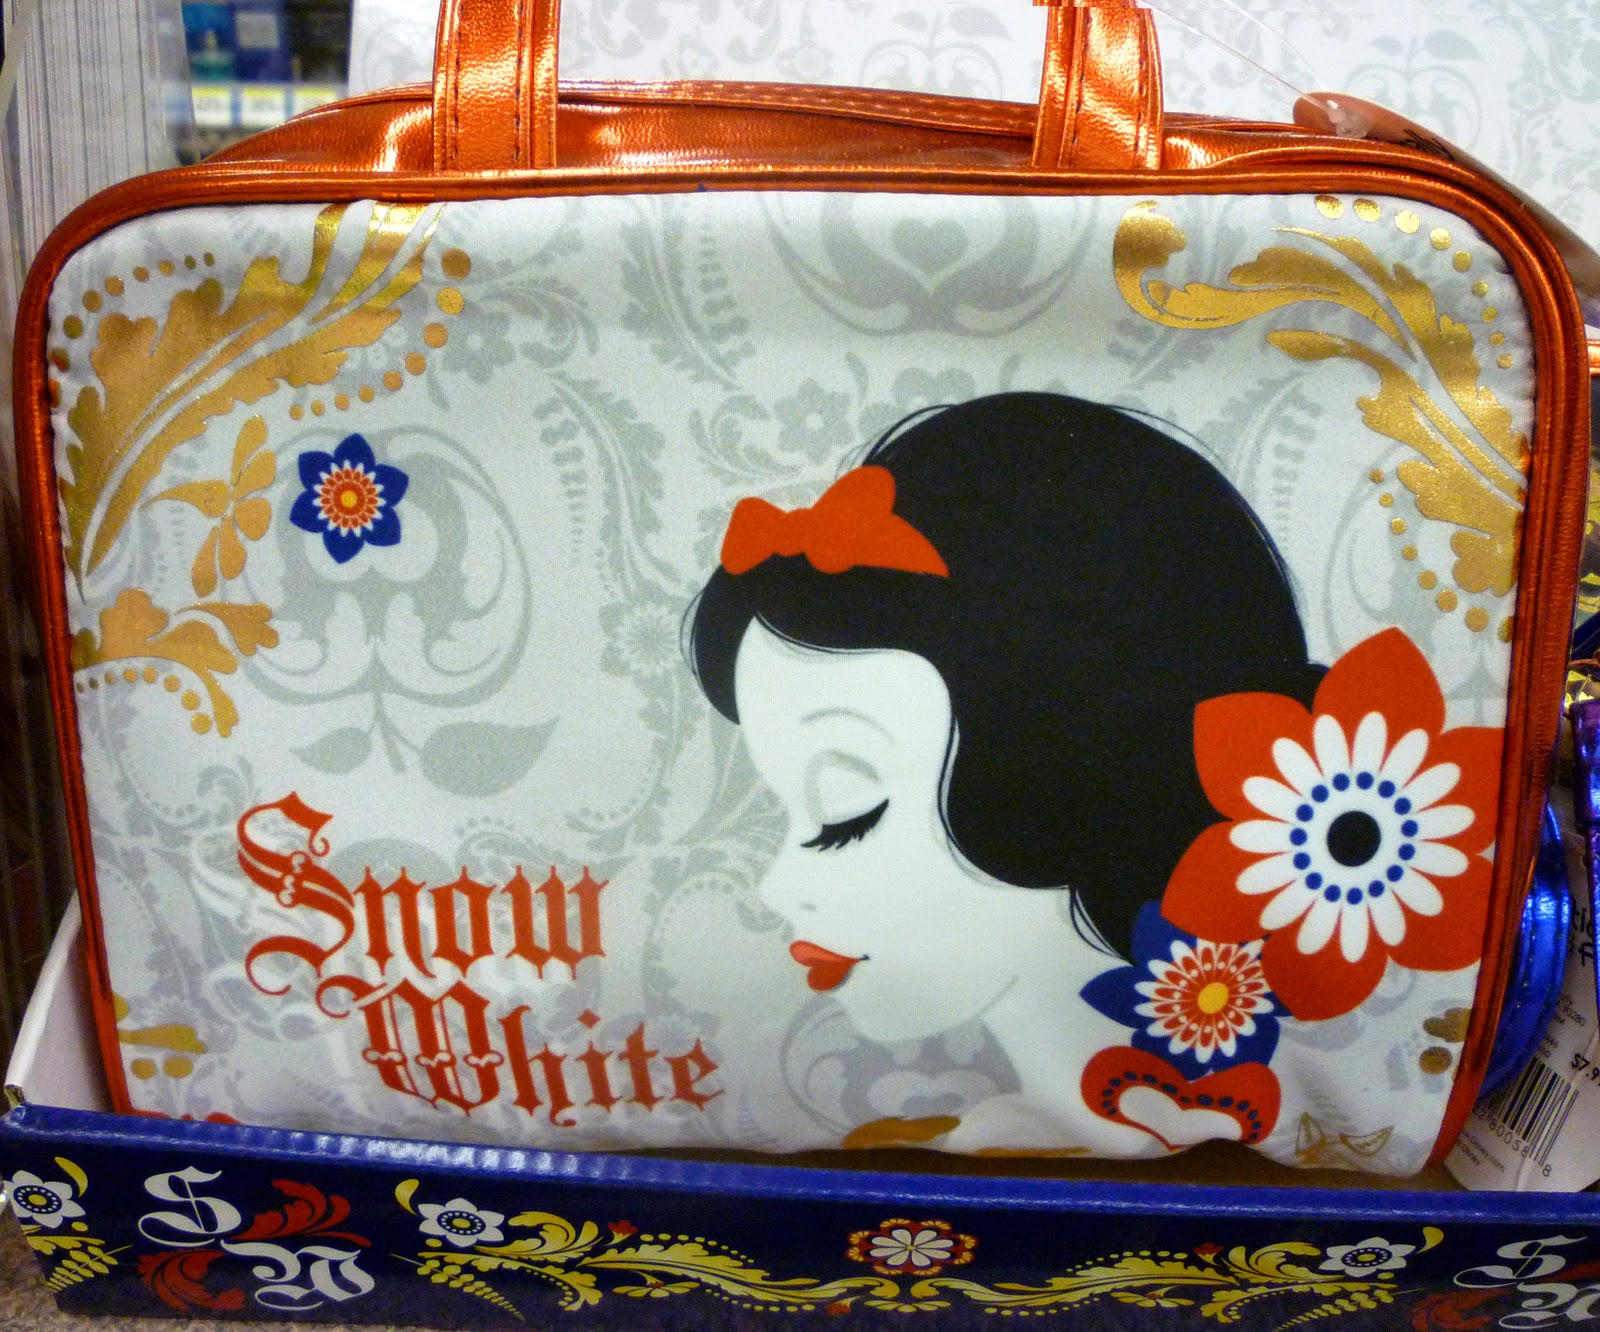 Out This Year's Snow White